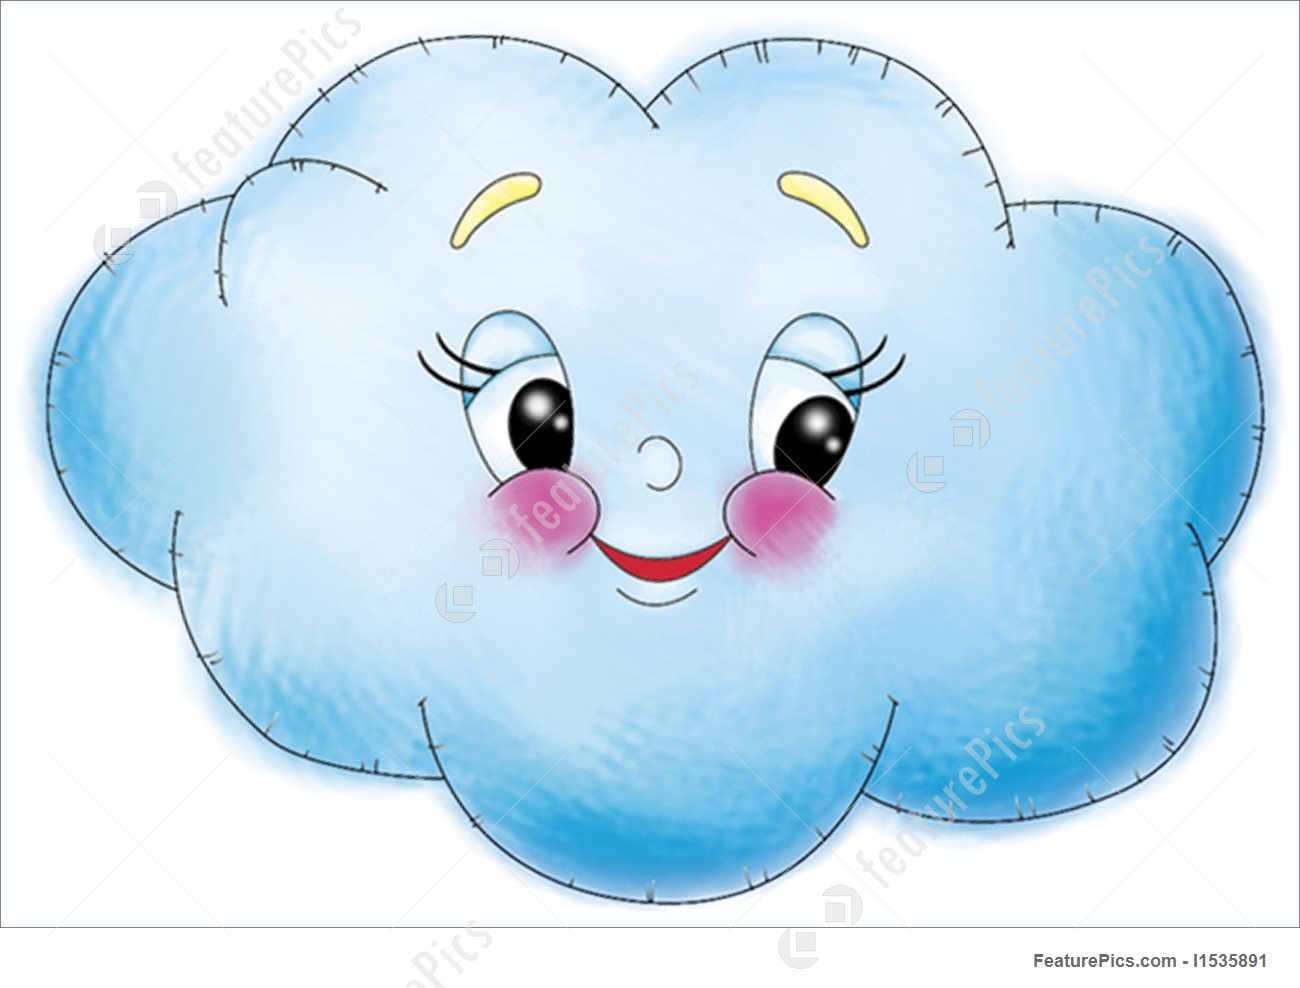 Skyscapes: A digitally rendered happy cloud.